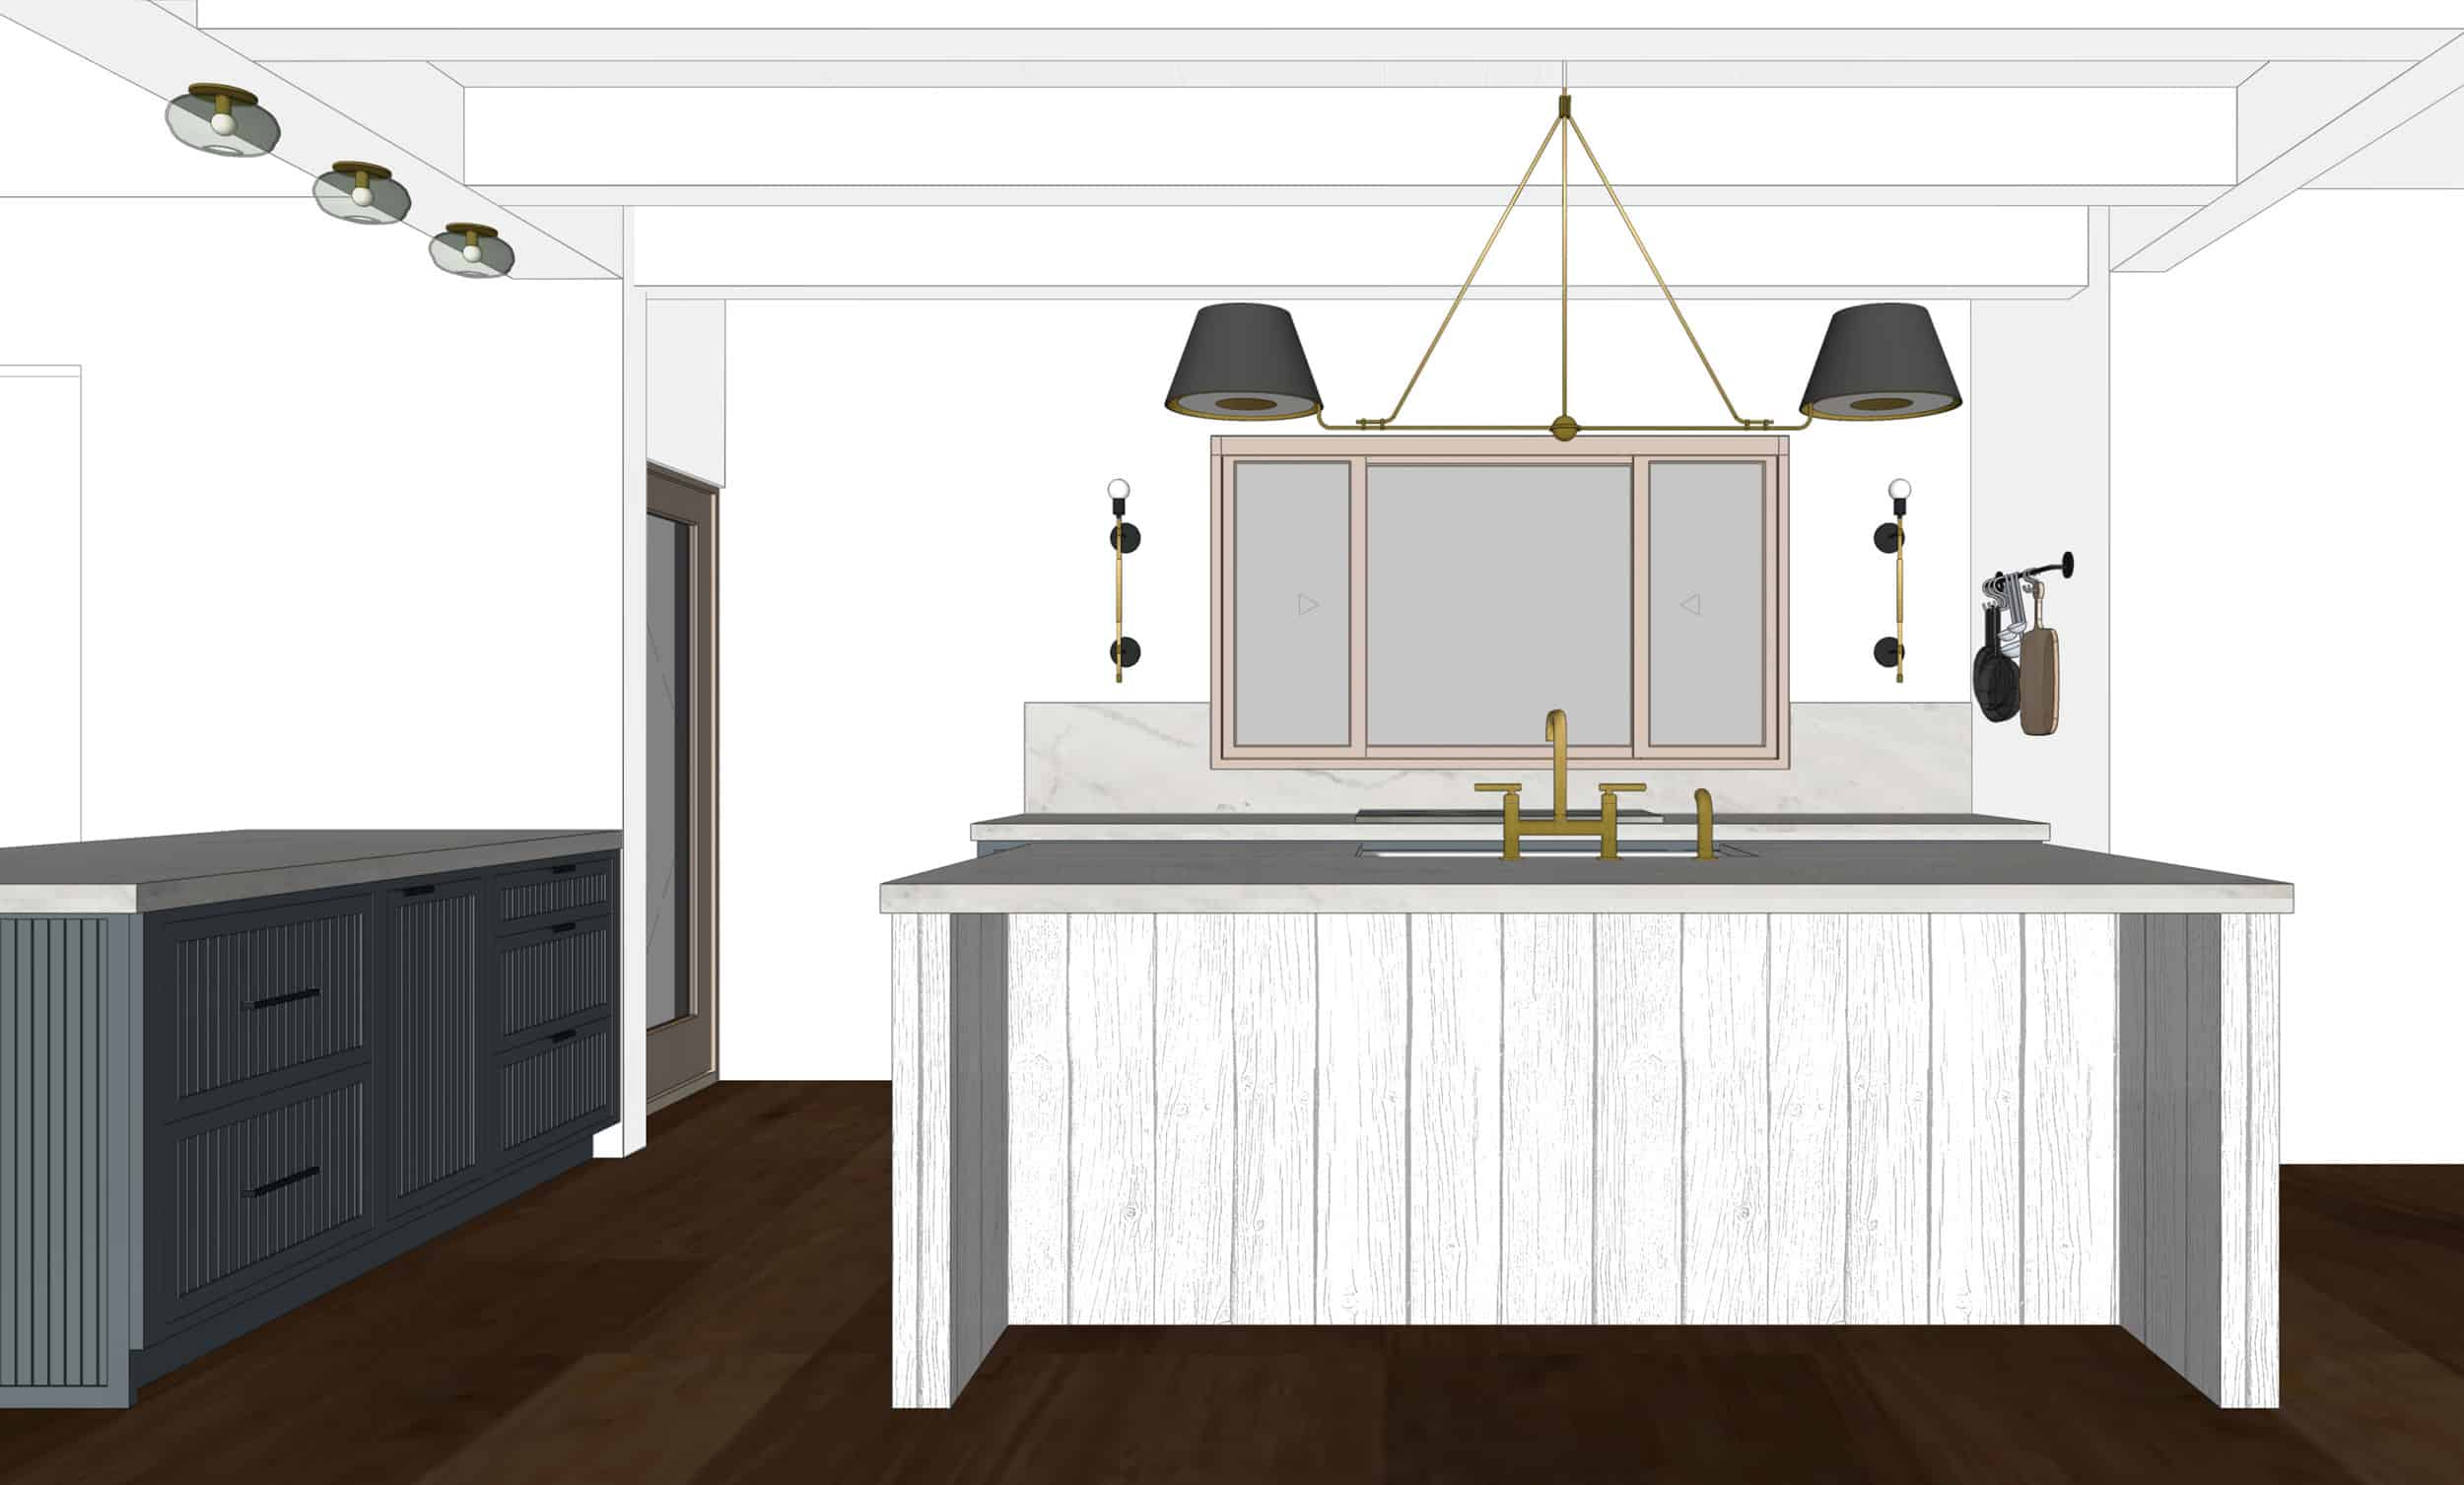 Emily Henderson Mountain Fixer Upper I Design You Decide Kitchen Render 07 6.20.18